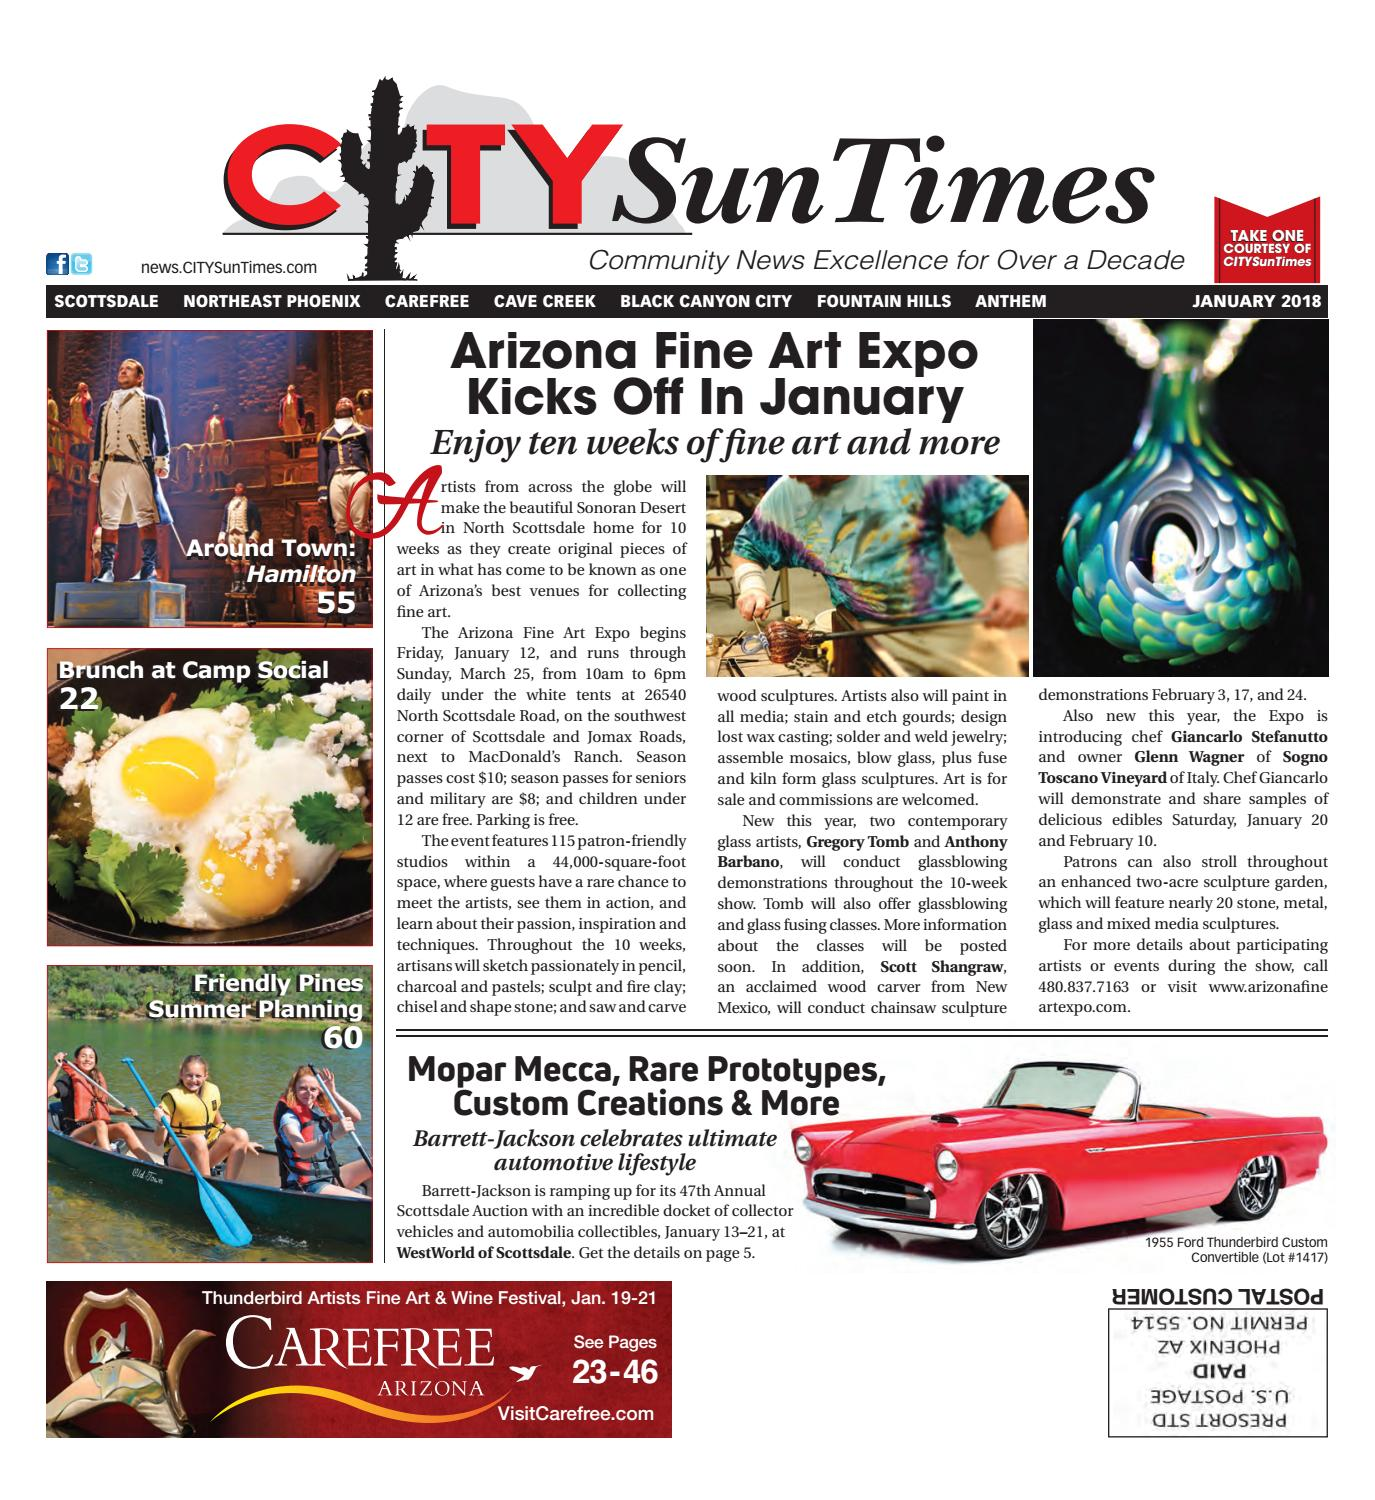 North Valley January 2018 Issue of CITYSunTimes by Jenifer